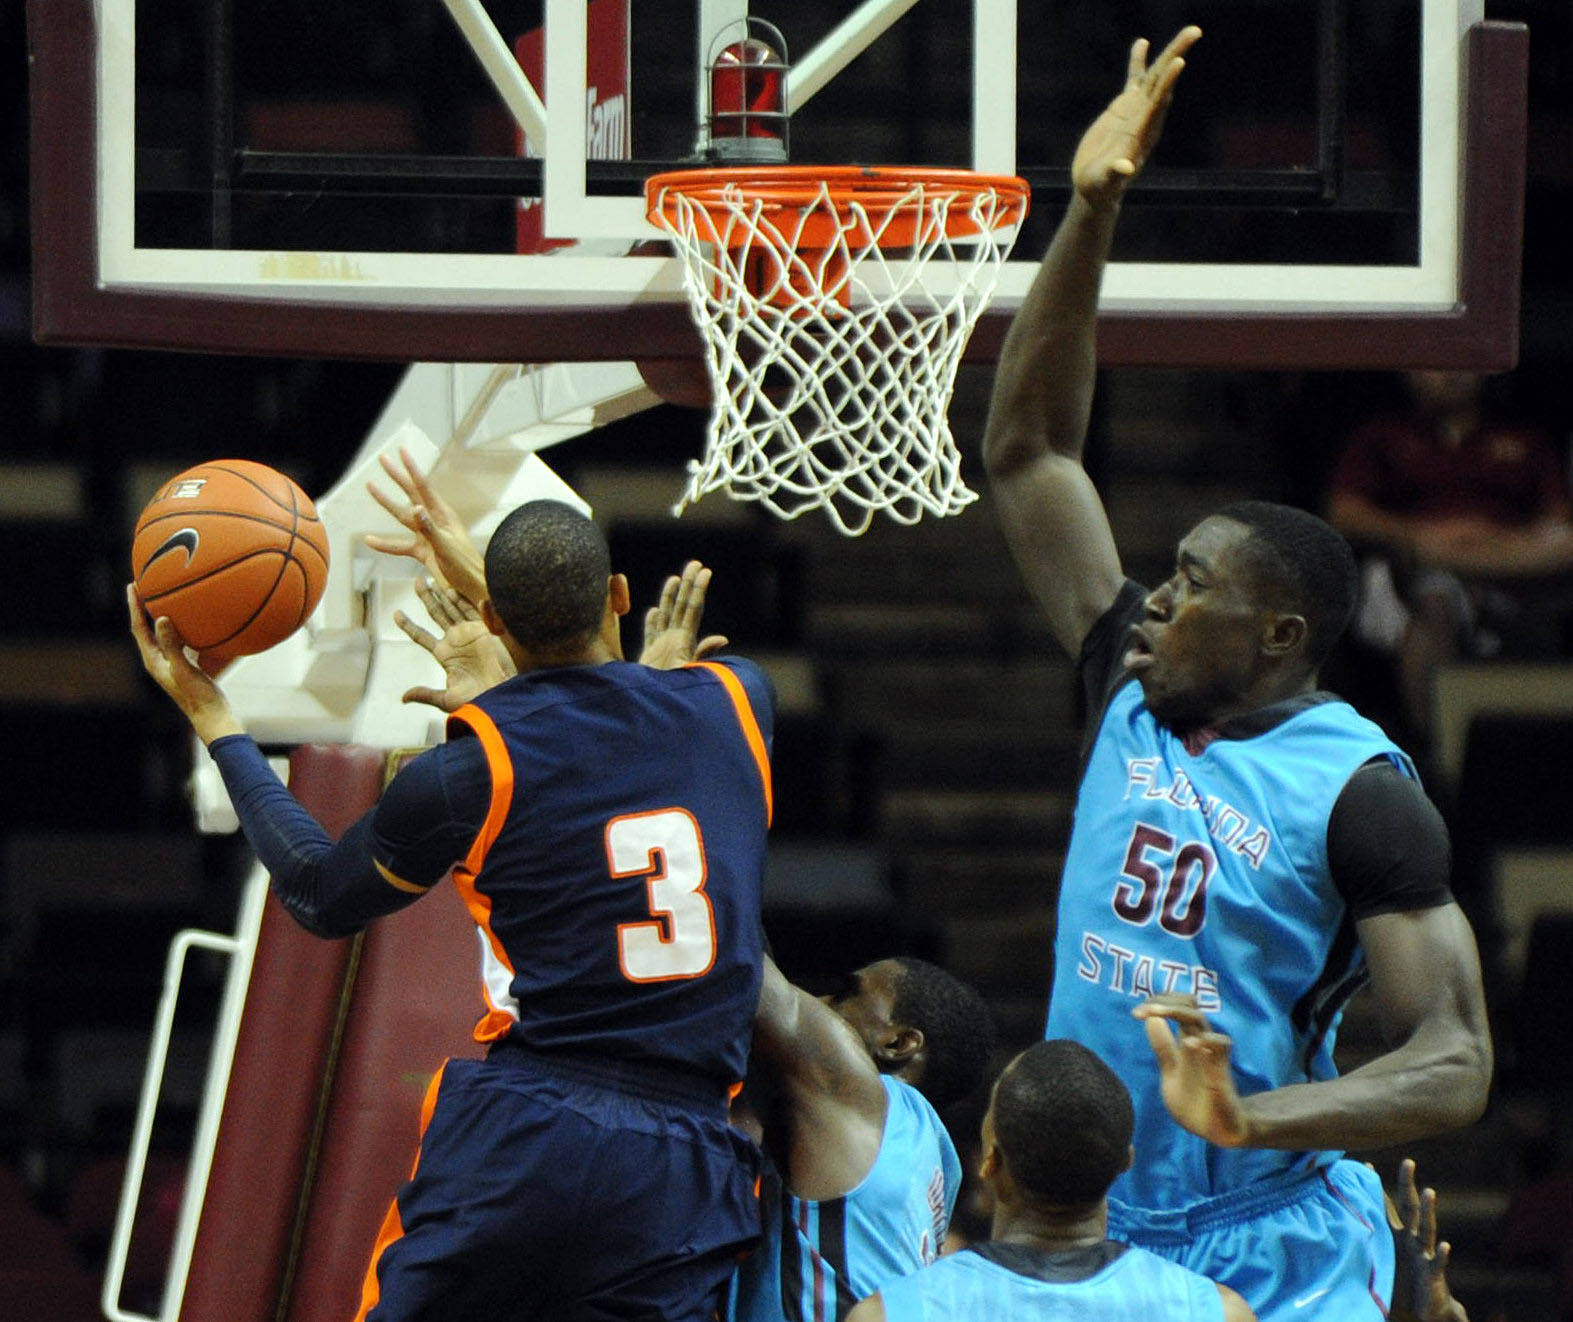 Terence Smith (3) goes up for a shot against defense from Florida State Seminoles center Michael Ojo (50). Mandatory Credit: Melina Vastola-USA TODAY Sports